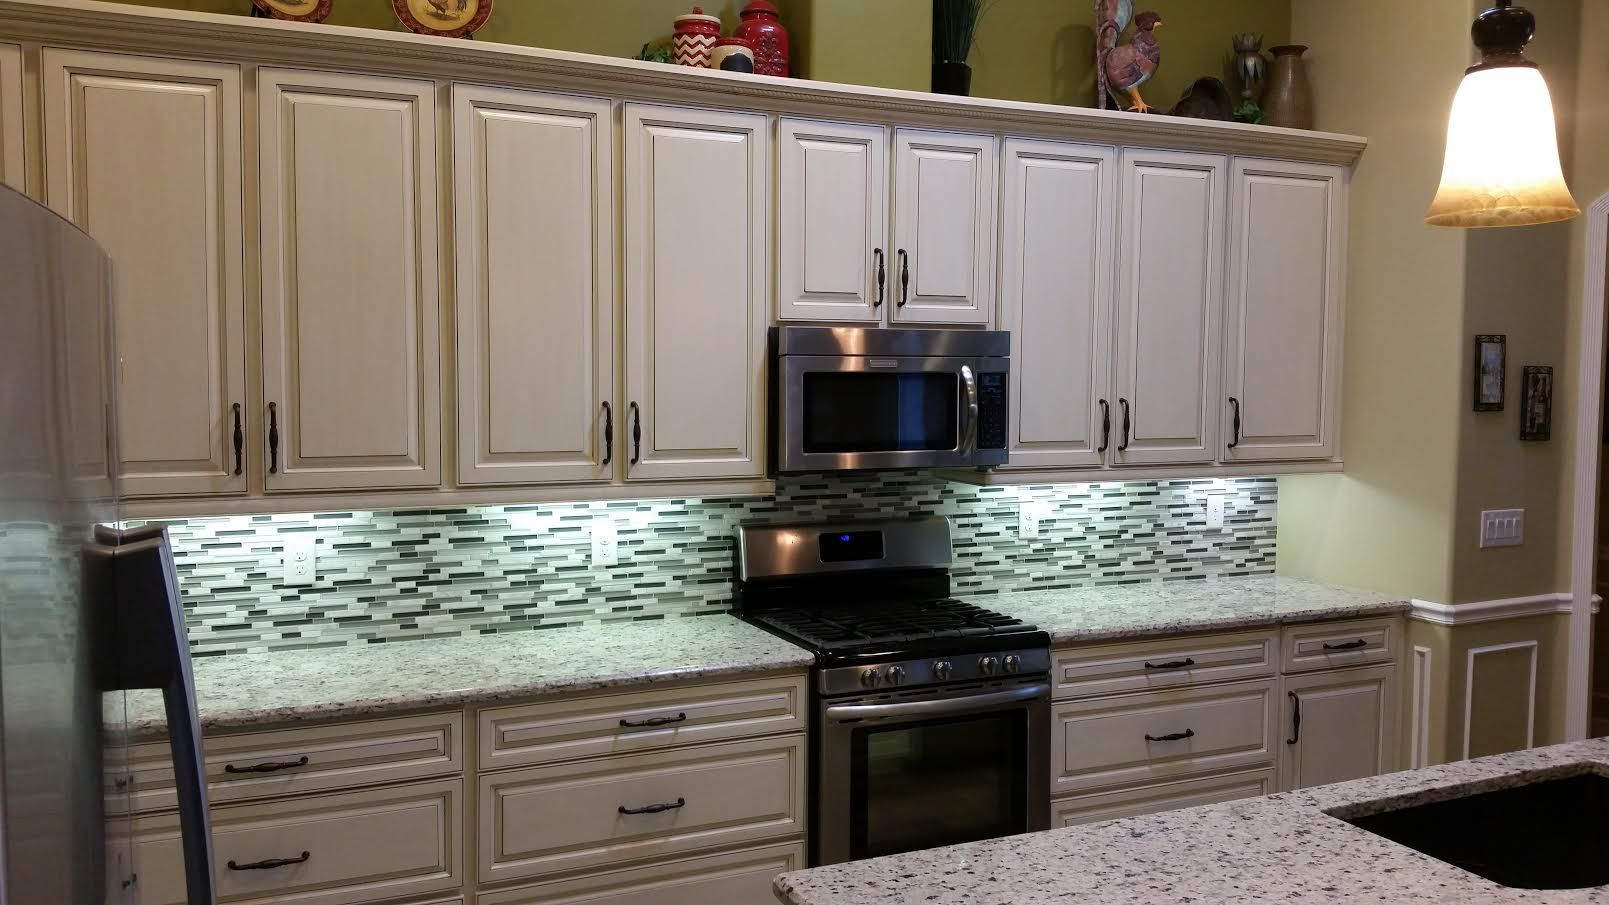 Kitchen Cabinet Modifications Nhance Charleston In 2020 Kitchen Remodel Small Kitchen Cabinets Cabinet